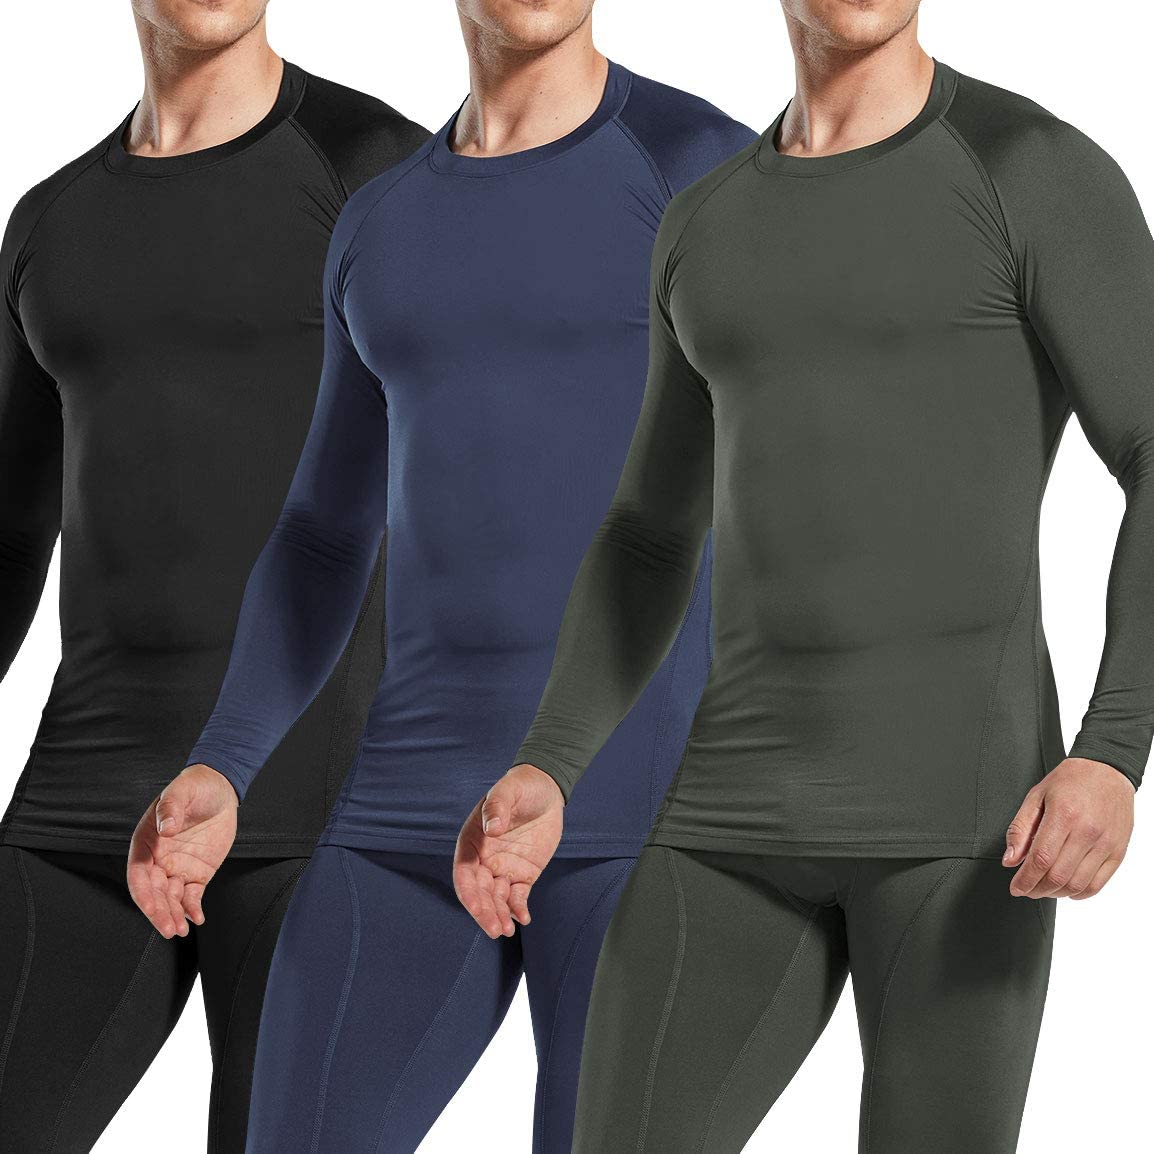 Athletic Running T-Shirt Winter Gear Sports Base Layer Top ATHLIO 1 or 3 Pack Mens Thermal Long Sleeve Compression Shirts